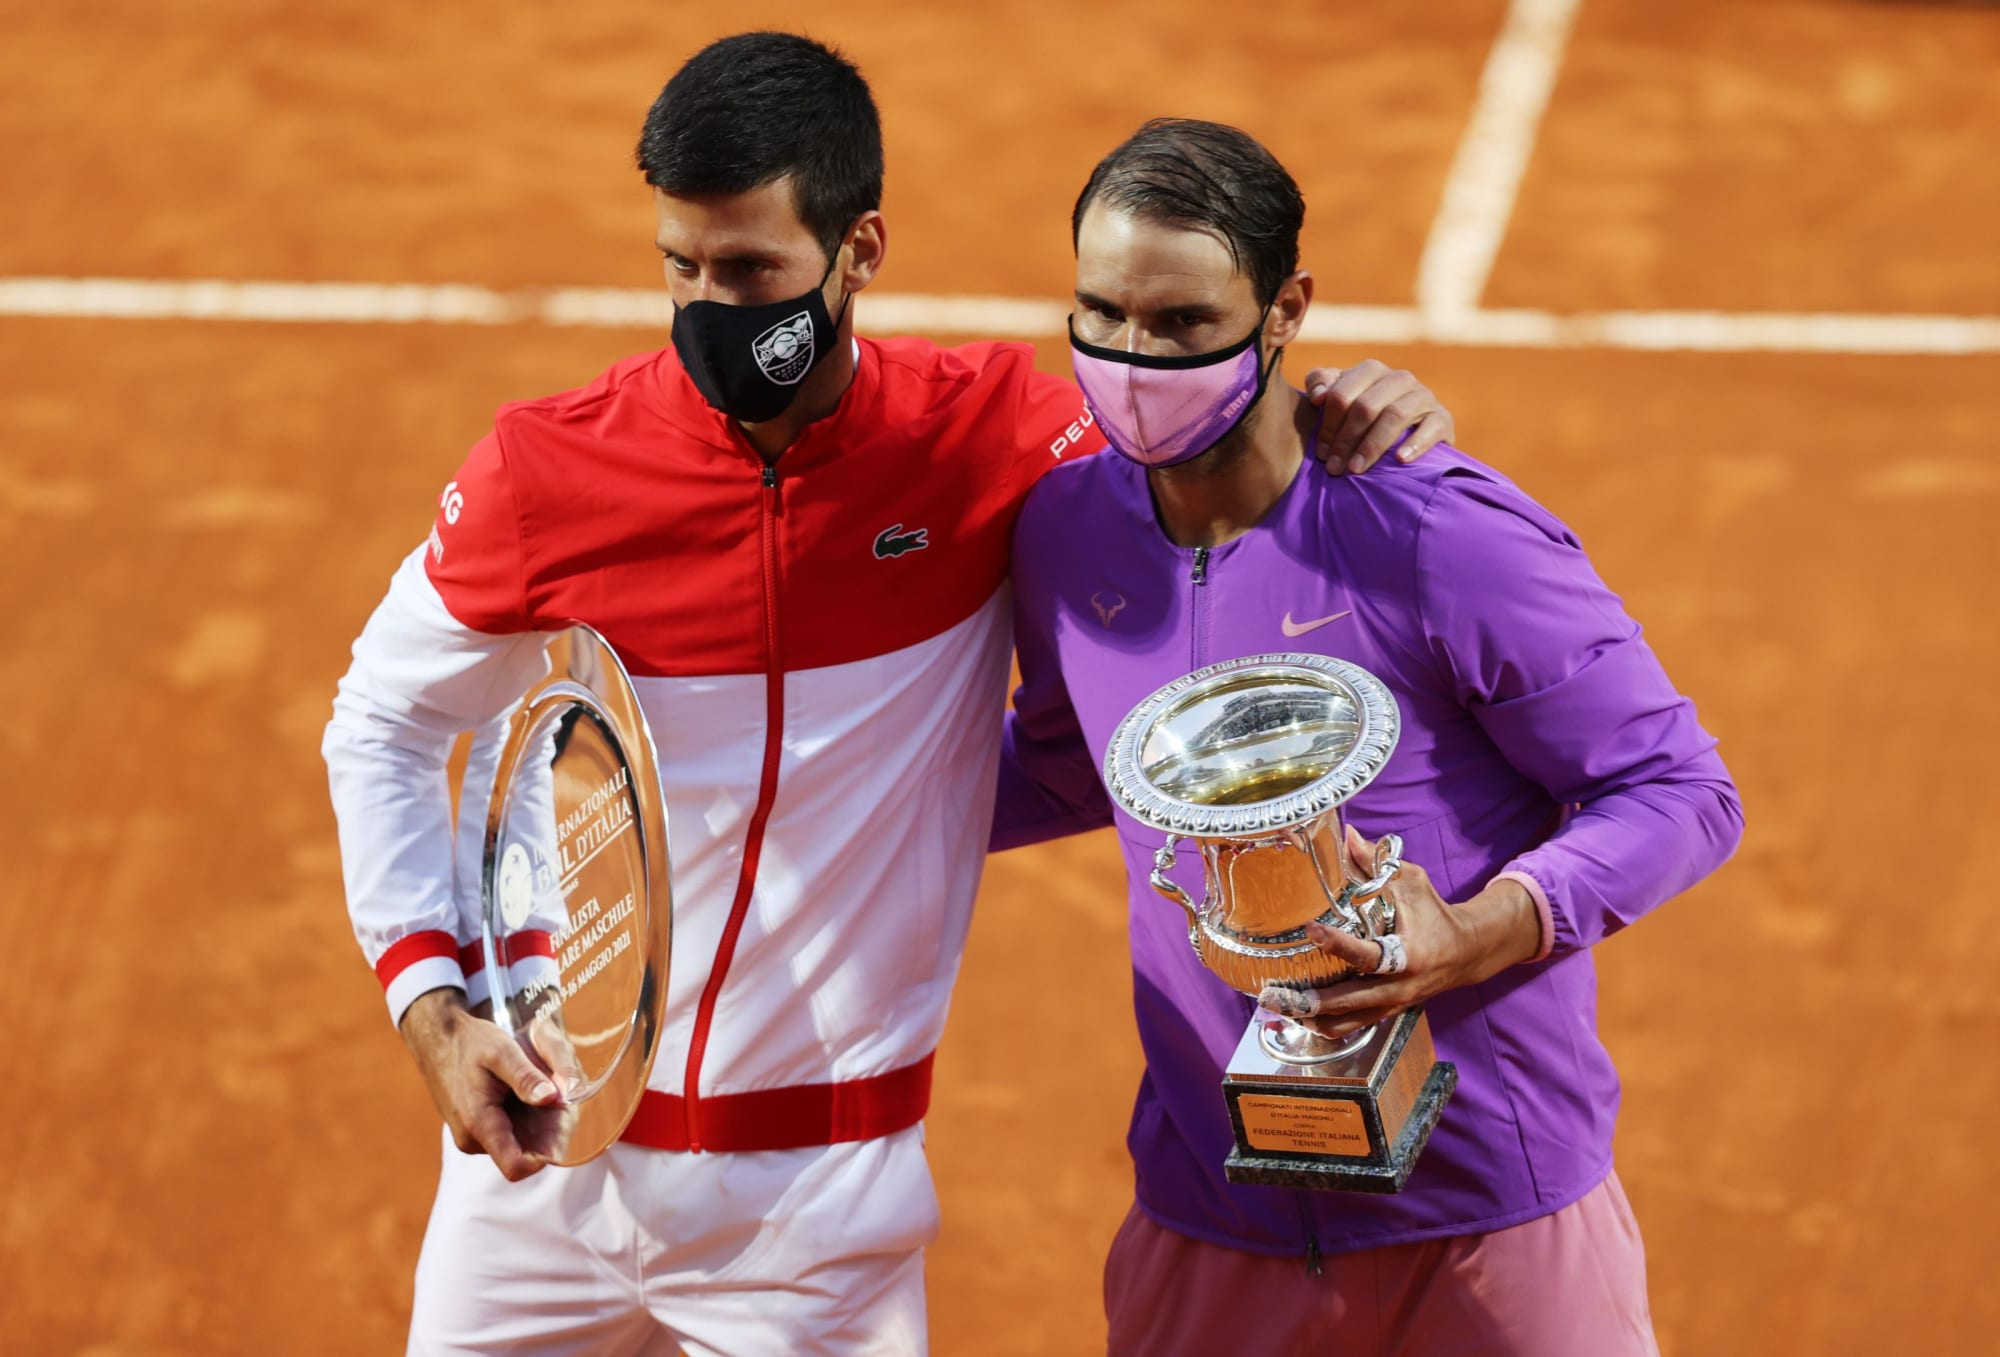 3 takeaways from the final in Rome